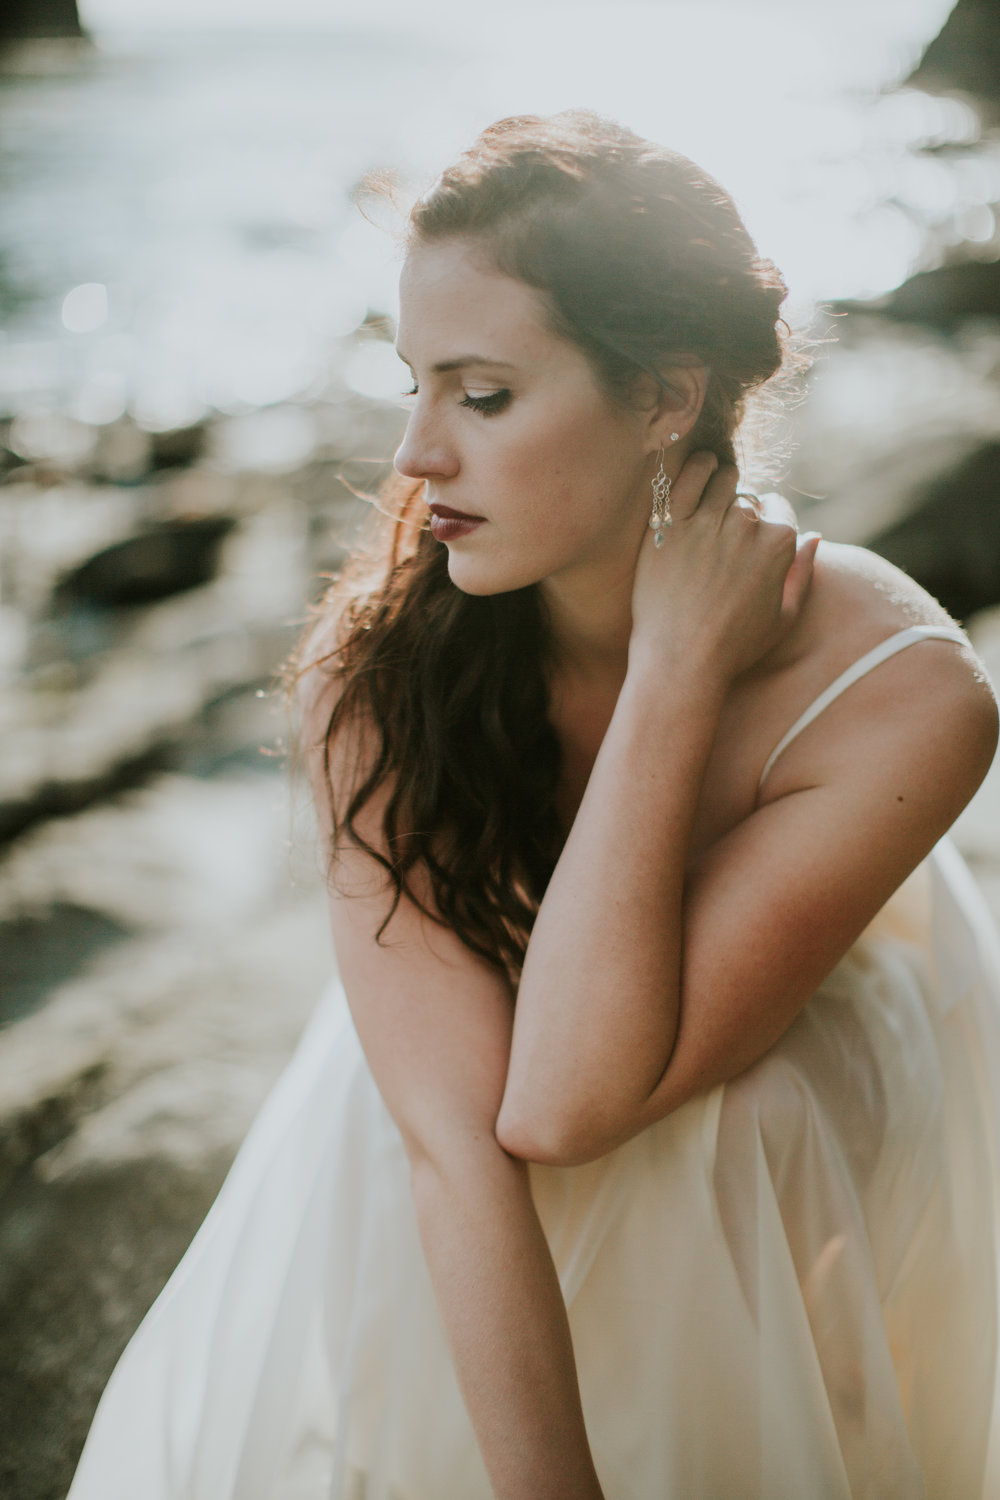 Port-Angeles-Salt-Creek-beach-wedding-bride-PNW-olympic-peninsula-photographer-Kayla-Dawn-Photography-outdoors-golden-hour-dancer-dress (1).jpg